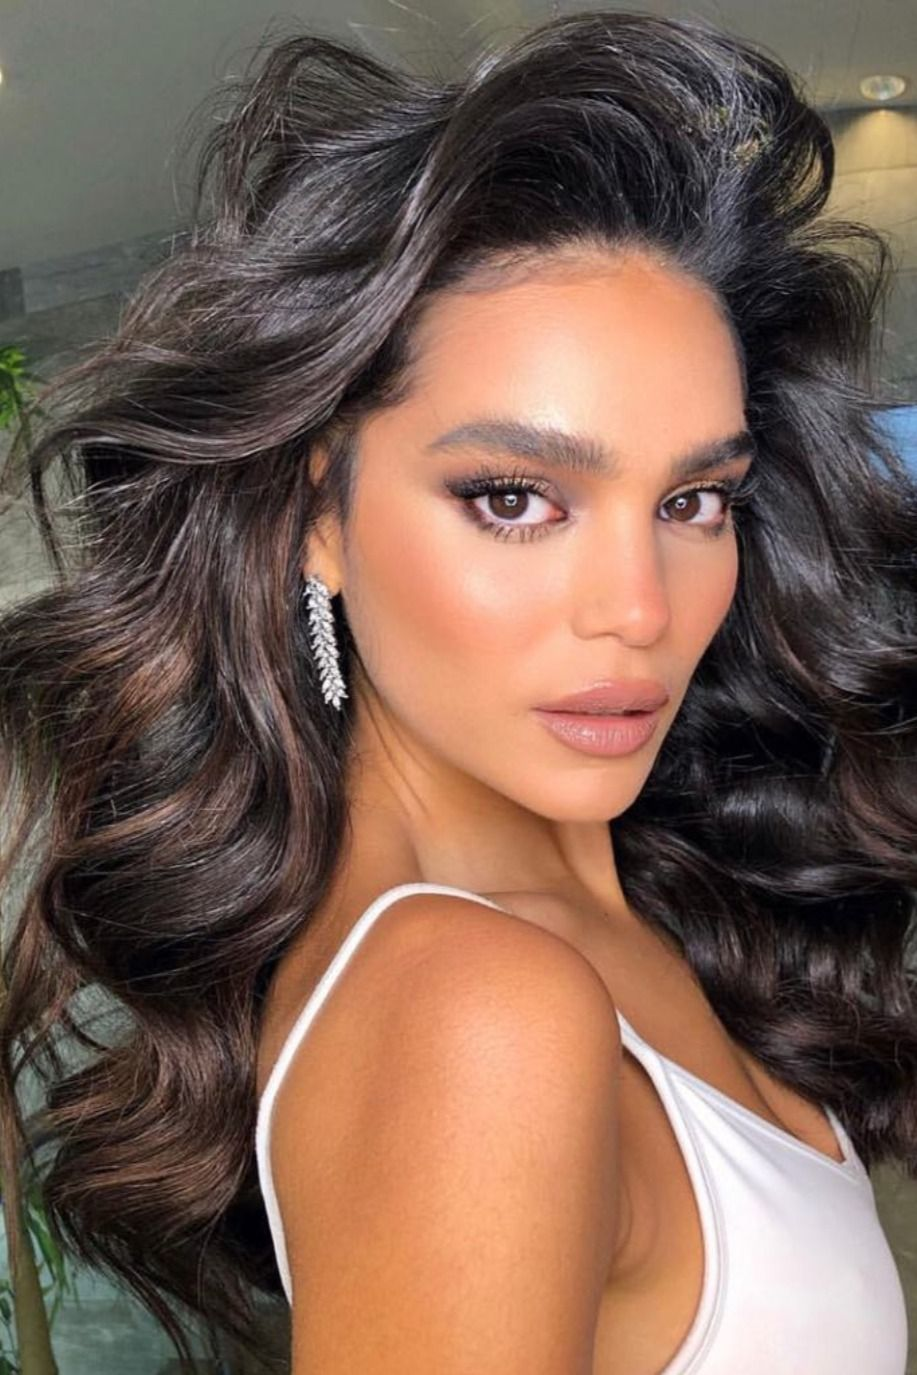 beauty#face#hairstyles#women#hair#volume#waves#fashionable#stylish ...